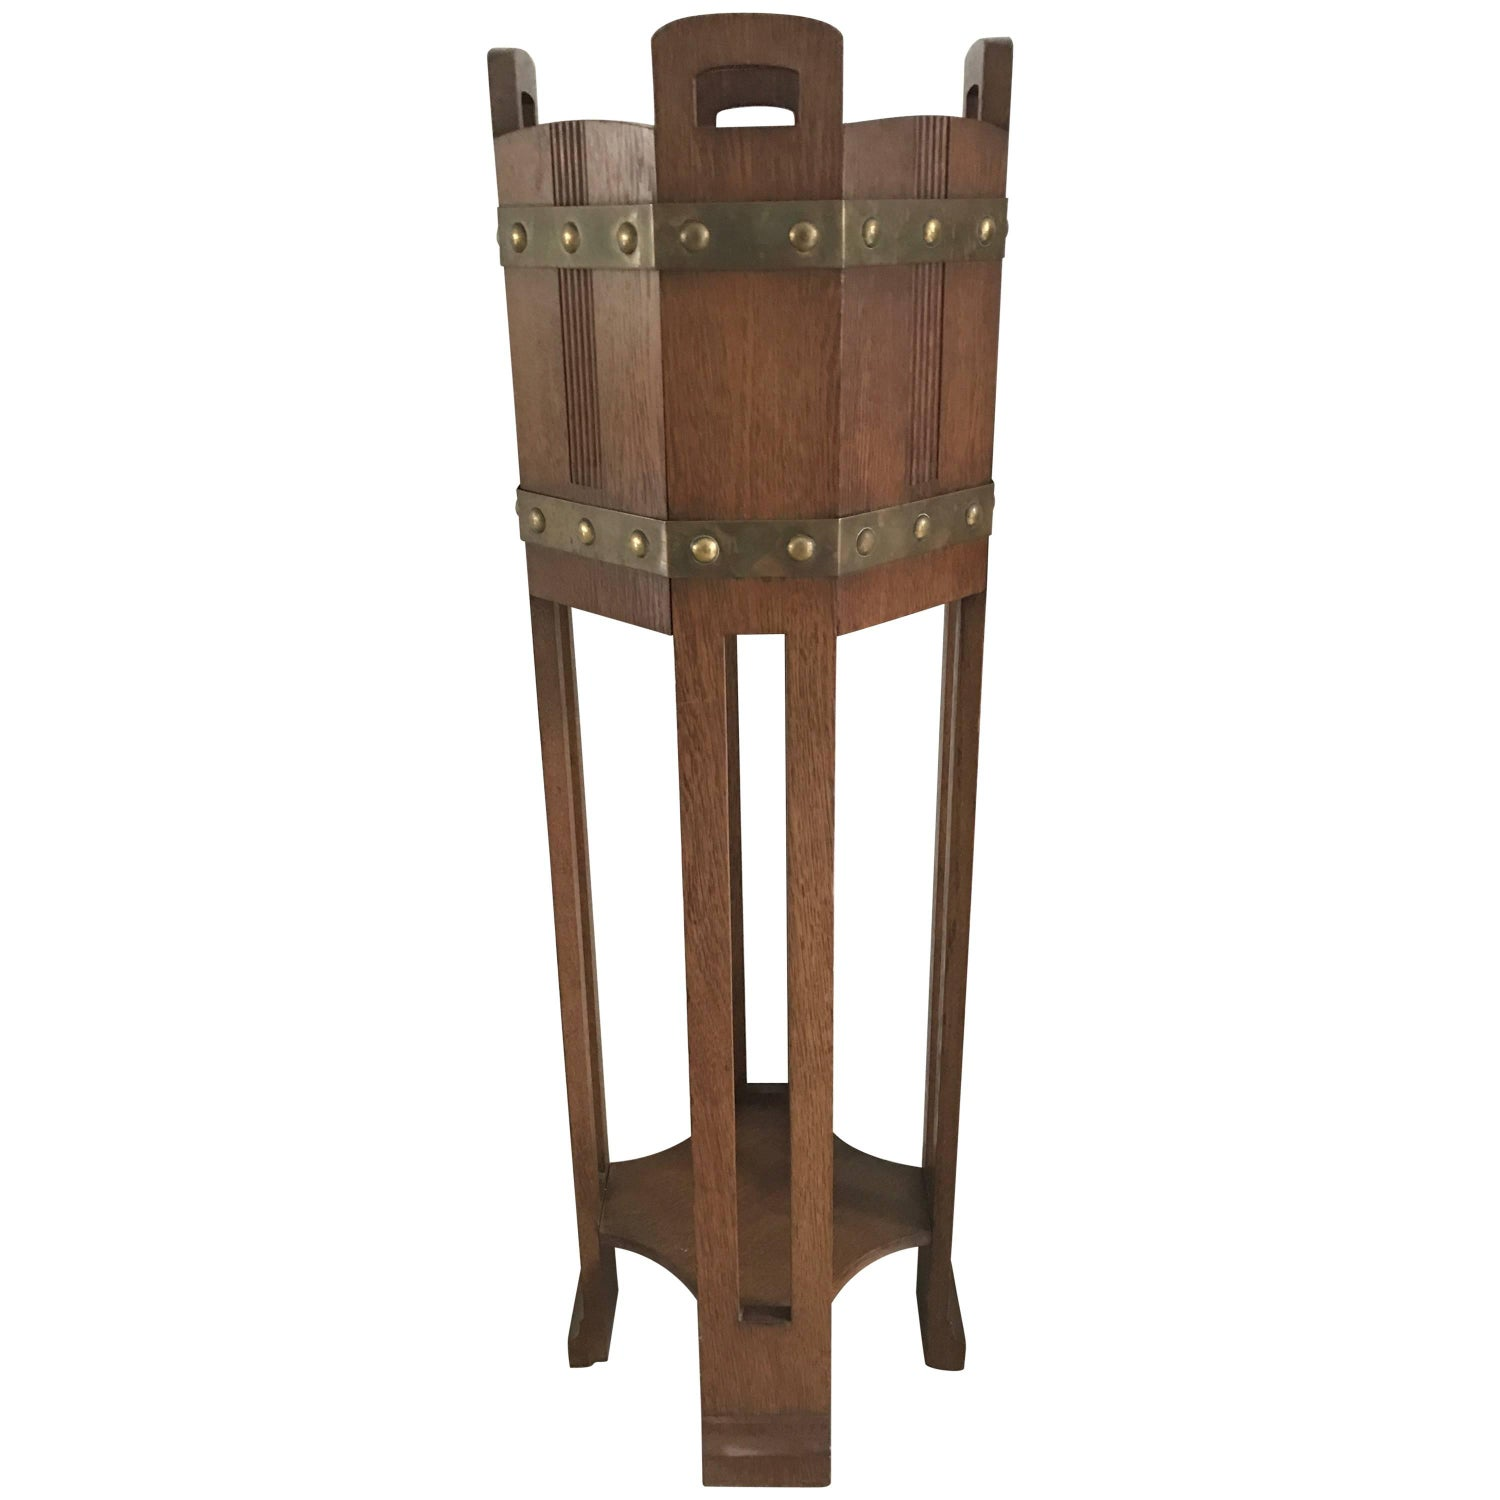 Arts and crafts oak jardiniere plant stand with copper bands for arts and crafts oak jardiniere plant stand with copper bands for sale at 1stdibs reviewsmspy